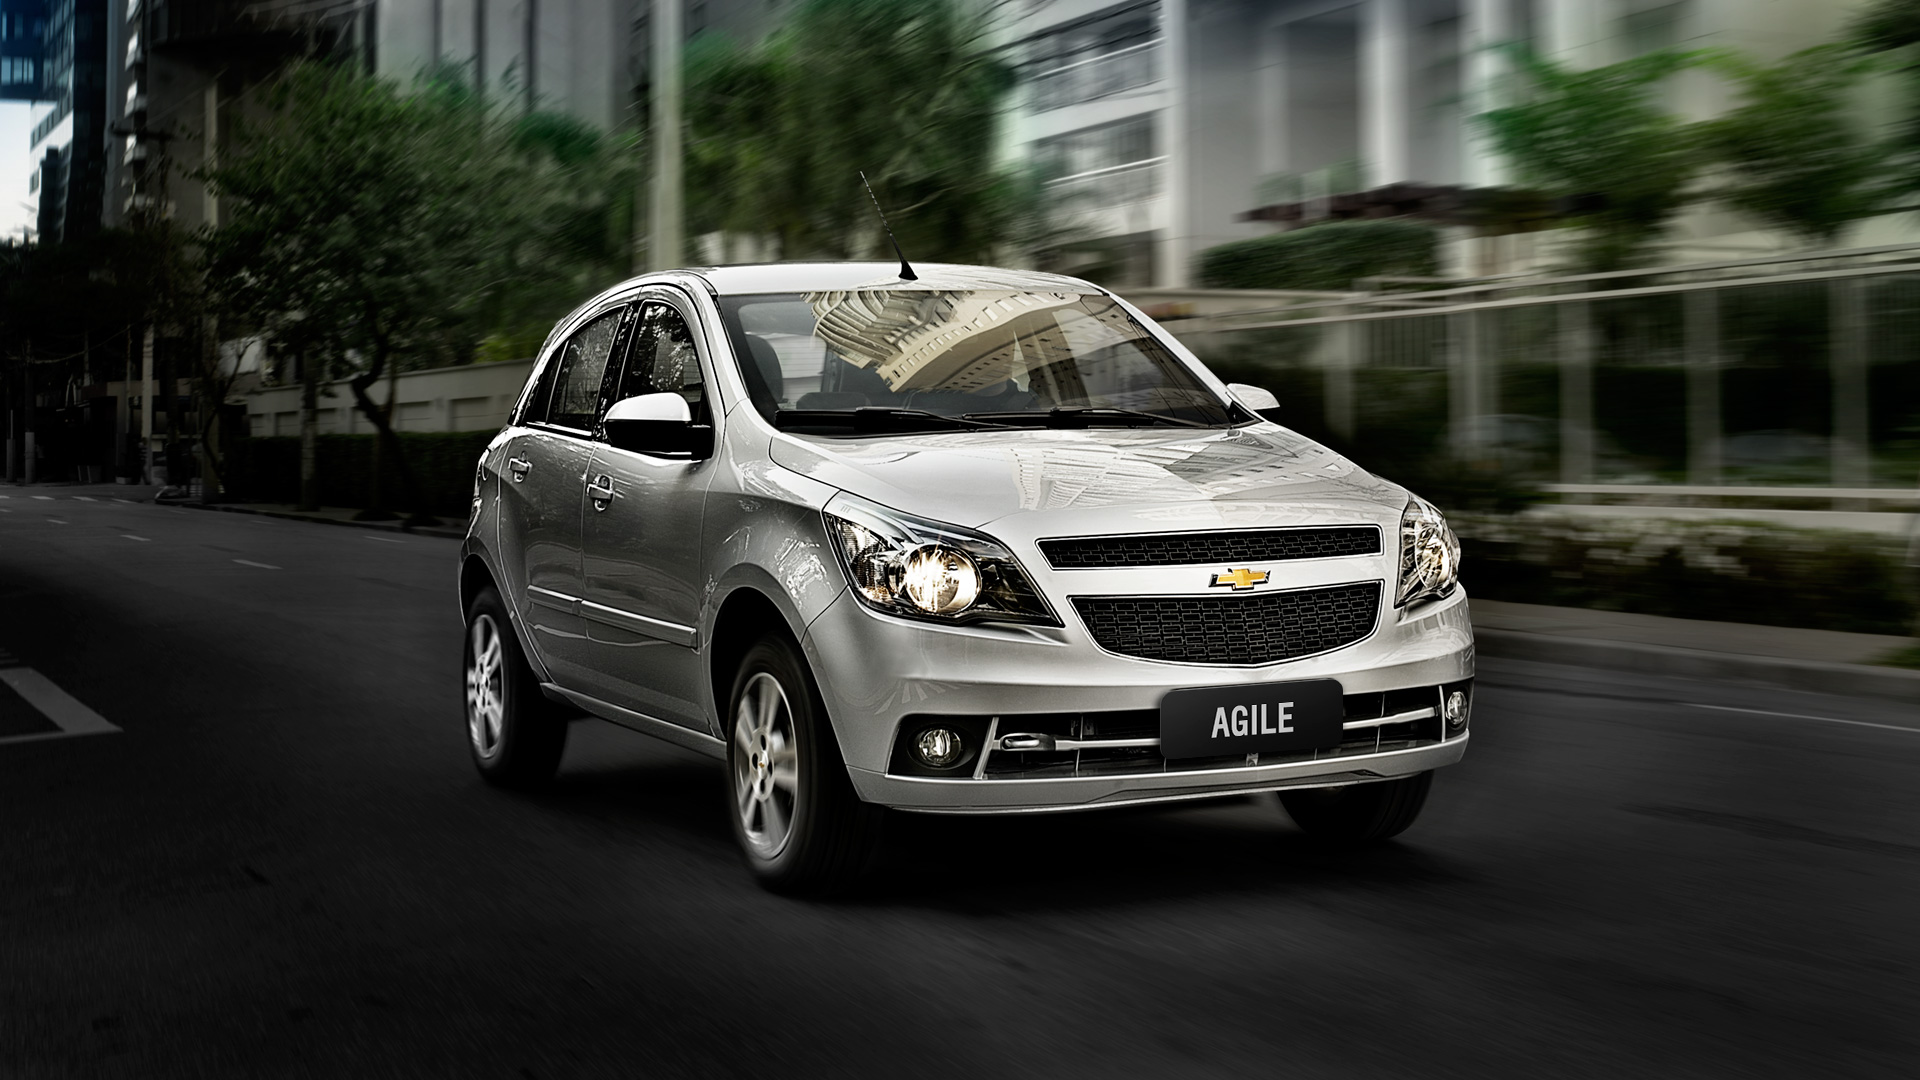 chevrolet agile specs  u0026 photos - 2009  2010  2011  2012  2013